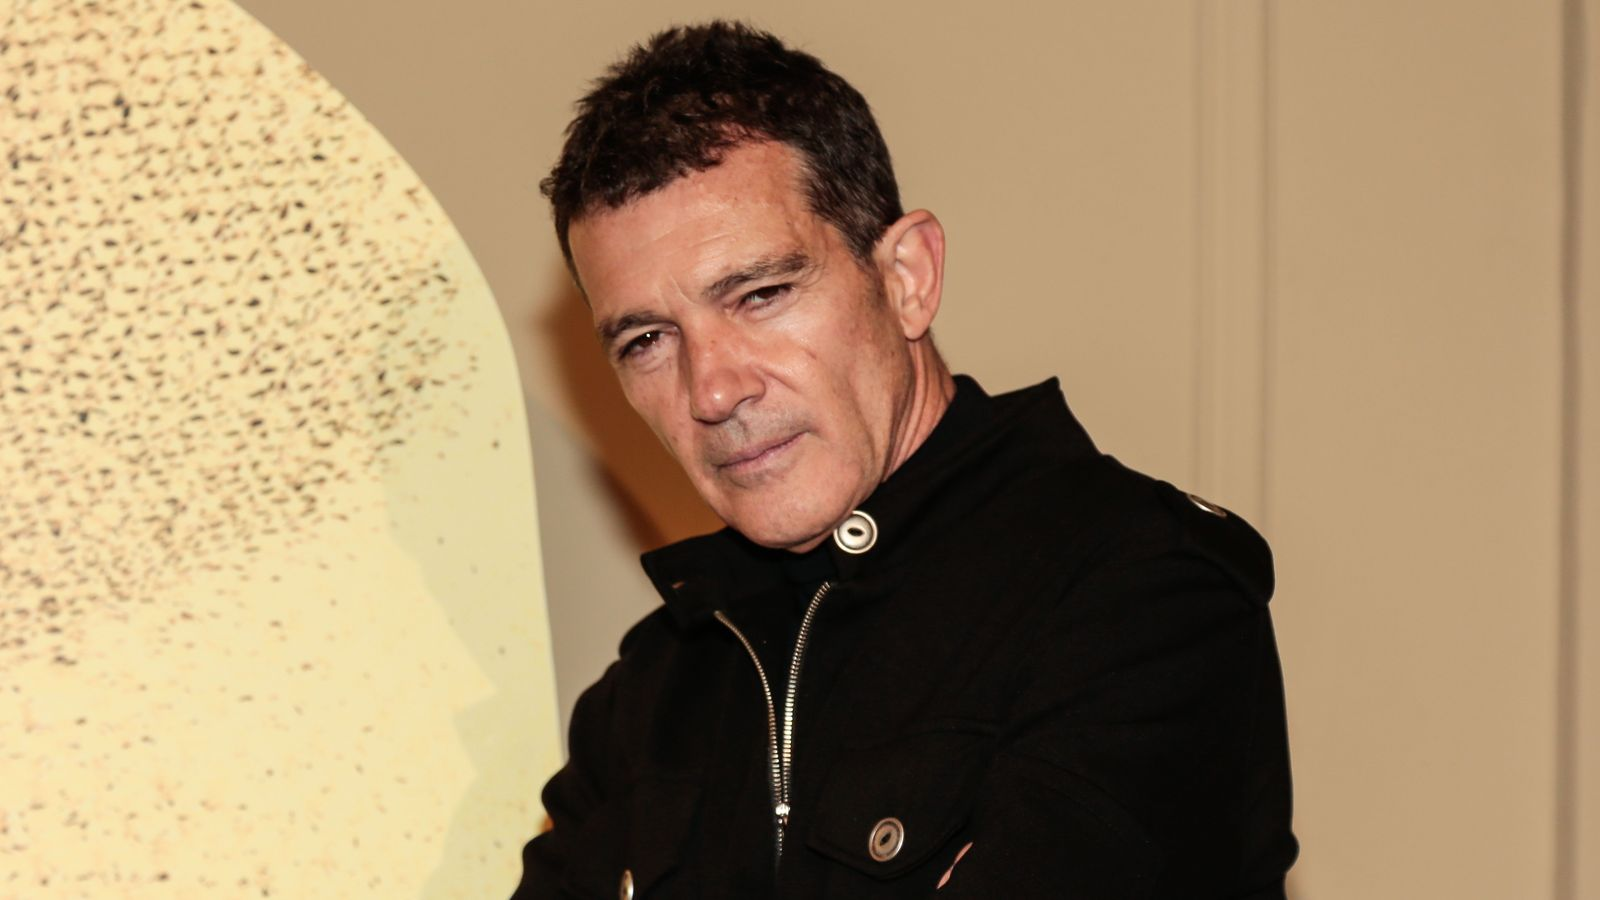 BARCELONA, SPAIN - FEBRUARY 21: Producer Antonio Banderas attends 'A Chorus Line' Premiere at Teatre Tivoli on February 21, 2020 in Barcelona, Spain. (Photo by Miquel Benitez/Getty Images)